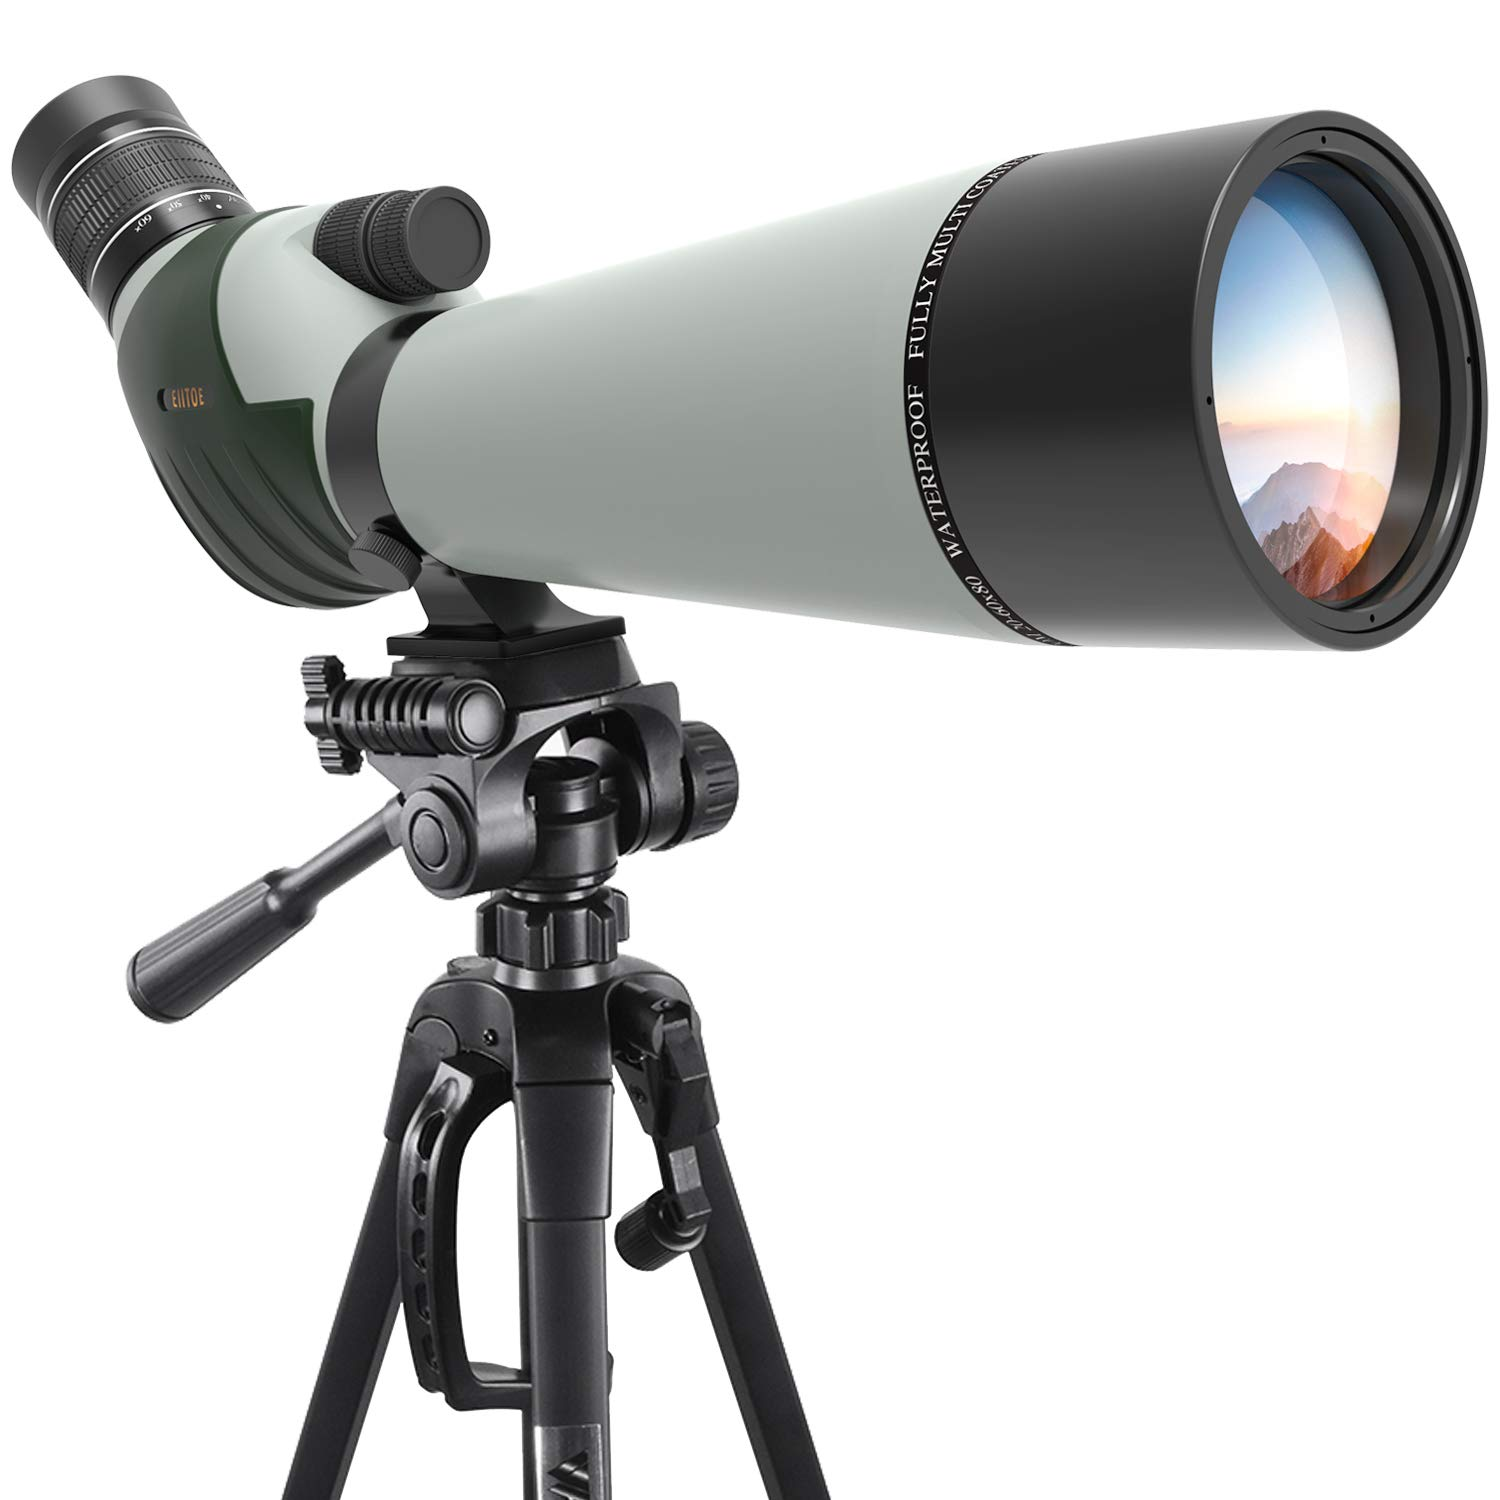 Emarth 20-60x80mm Porro Prism Spotting Scope with Camera Tripod, 45-Degree Angled Big Eyepiece,Waterproof Fogproof Spotter Scope for Target Shooting Bird Watching Archery Wildlife Scenery